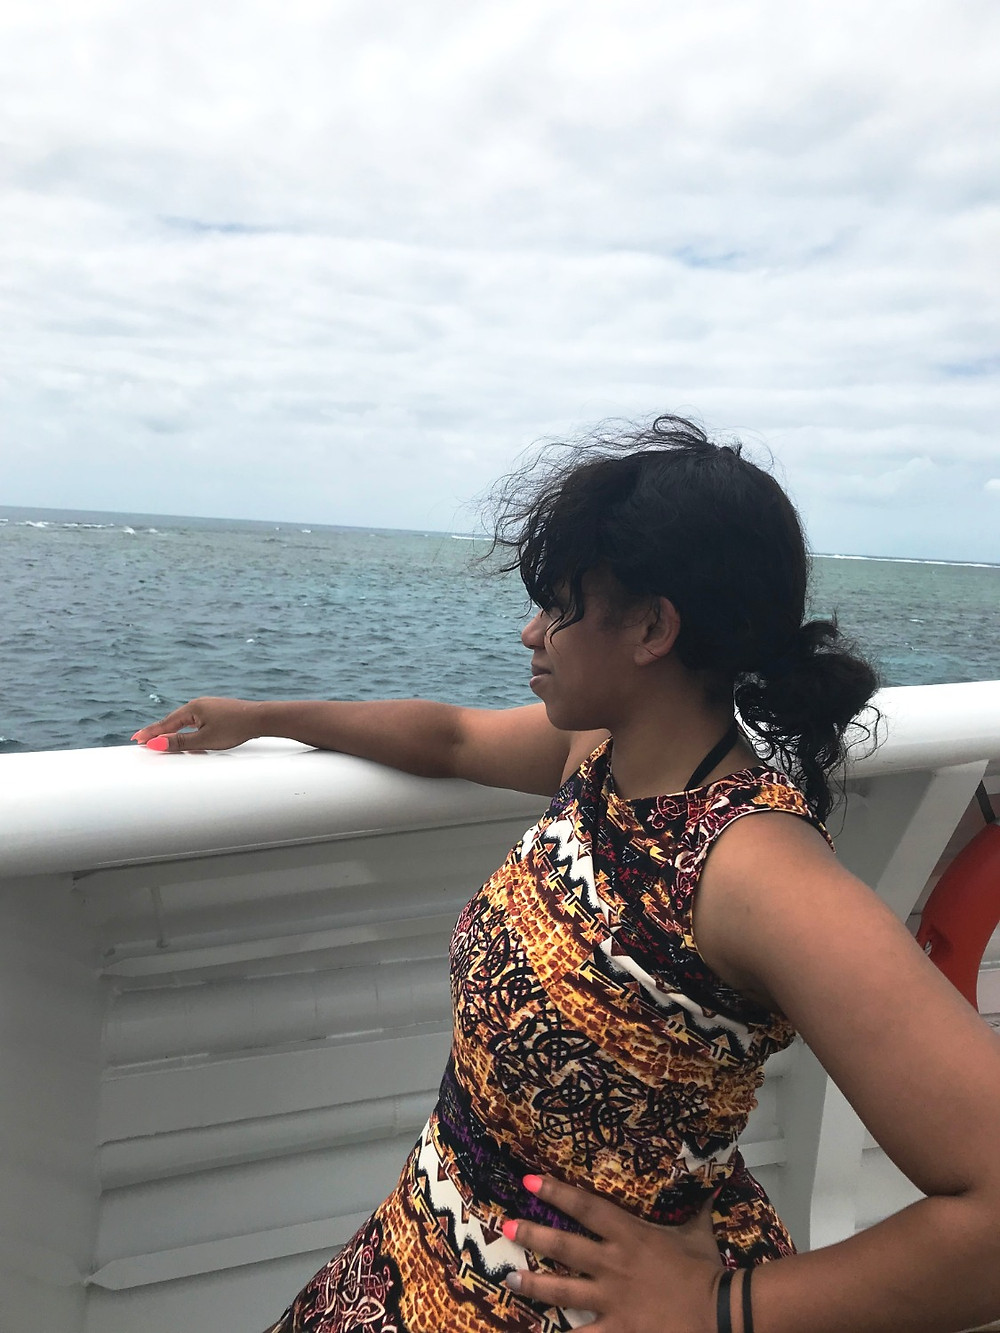 Kita the Explorer Looking out to see waiting for the next reef stop